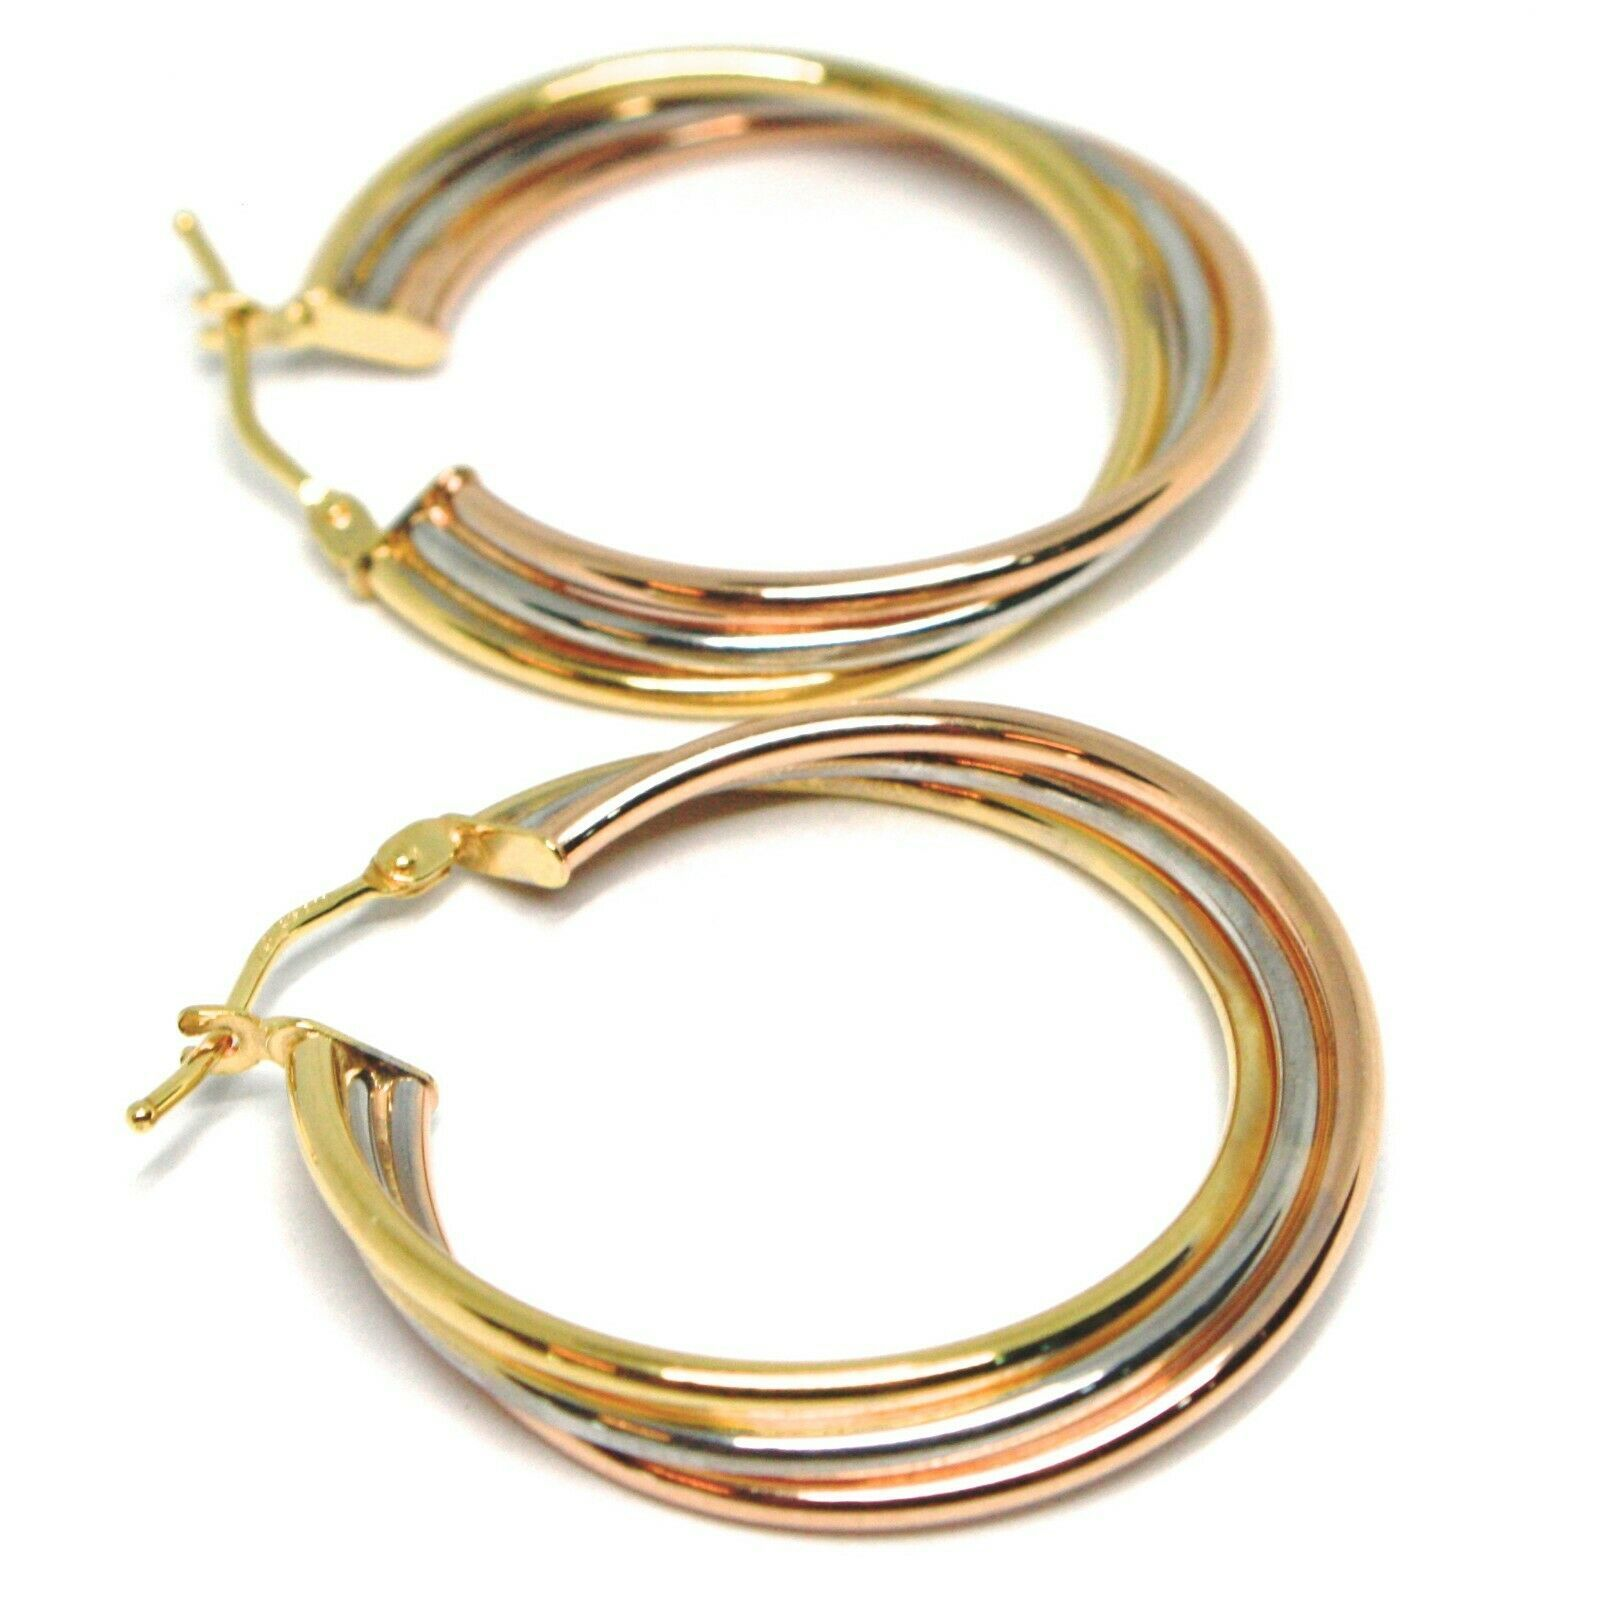 Earrings Circle White Gold, Pink, Yellow 750 18K, Twisted, 3 Tubes, 2.8 CM